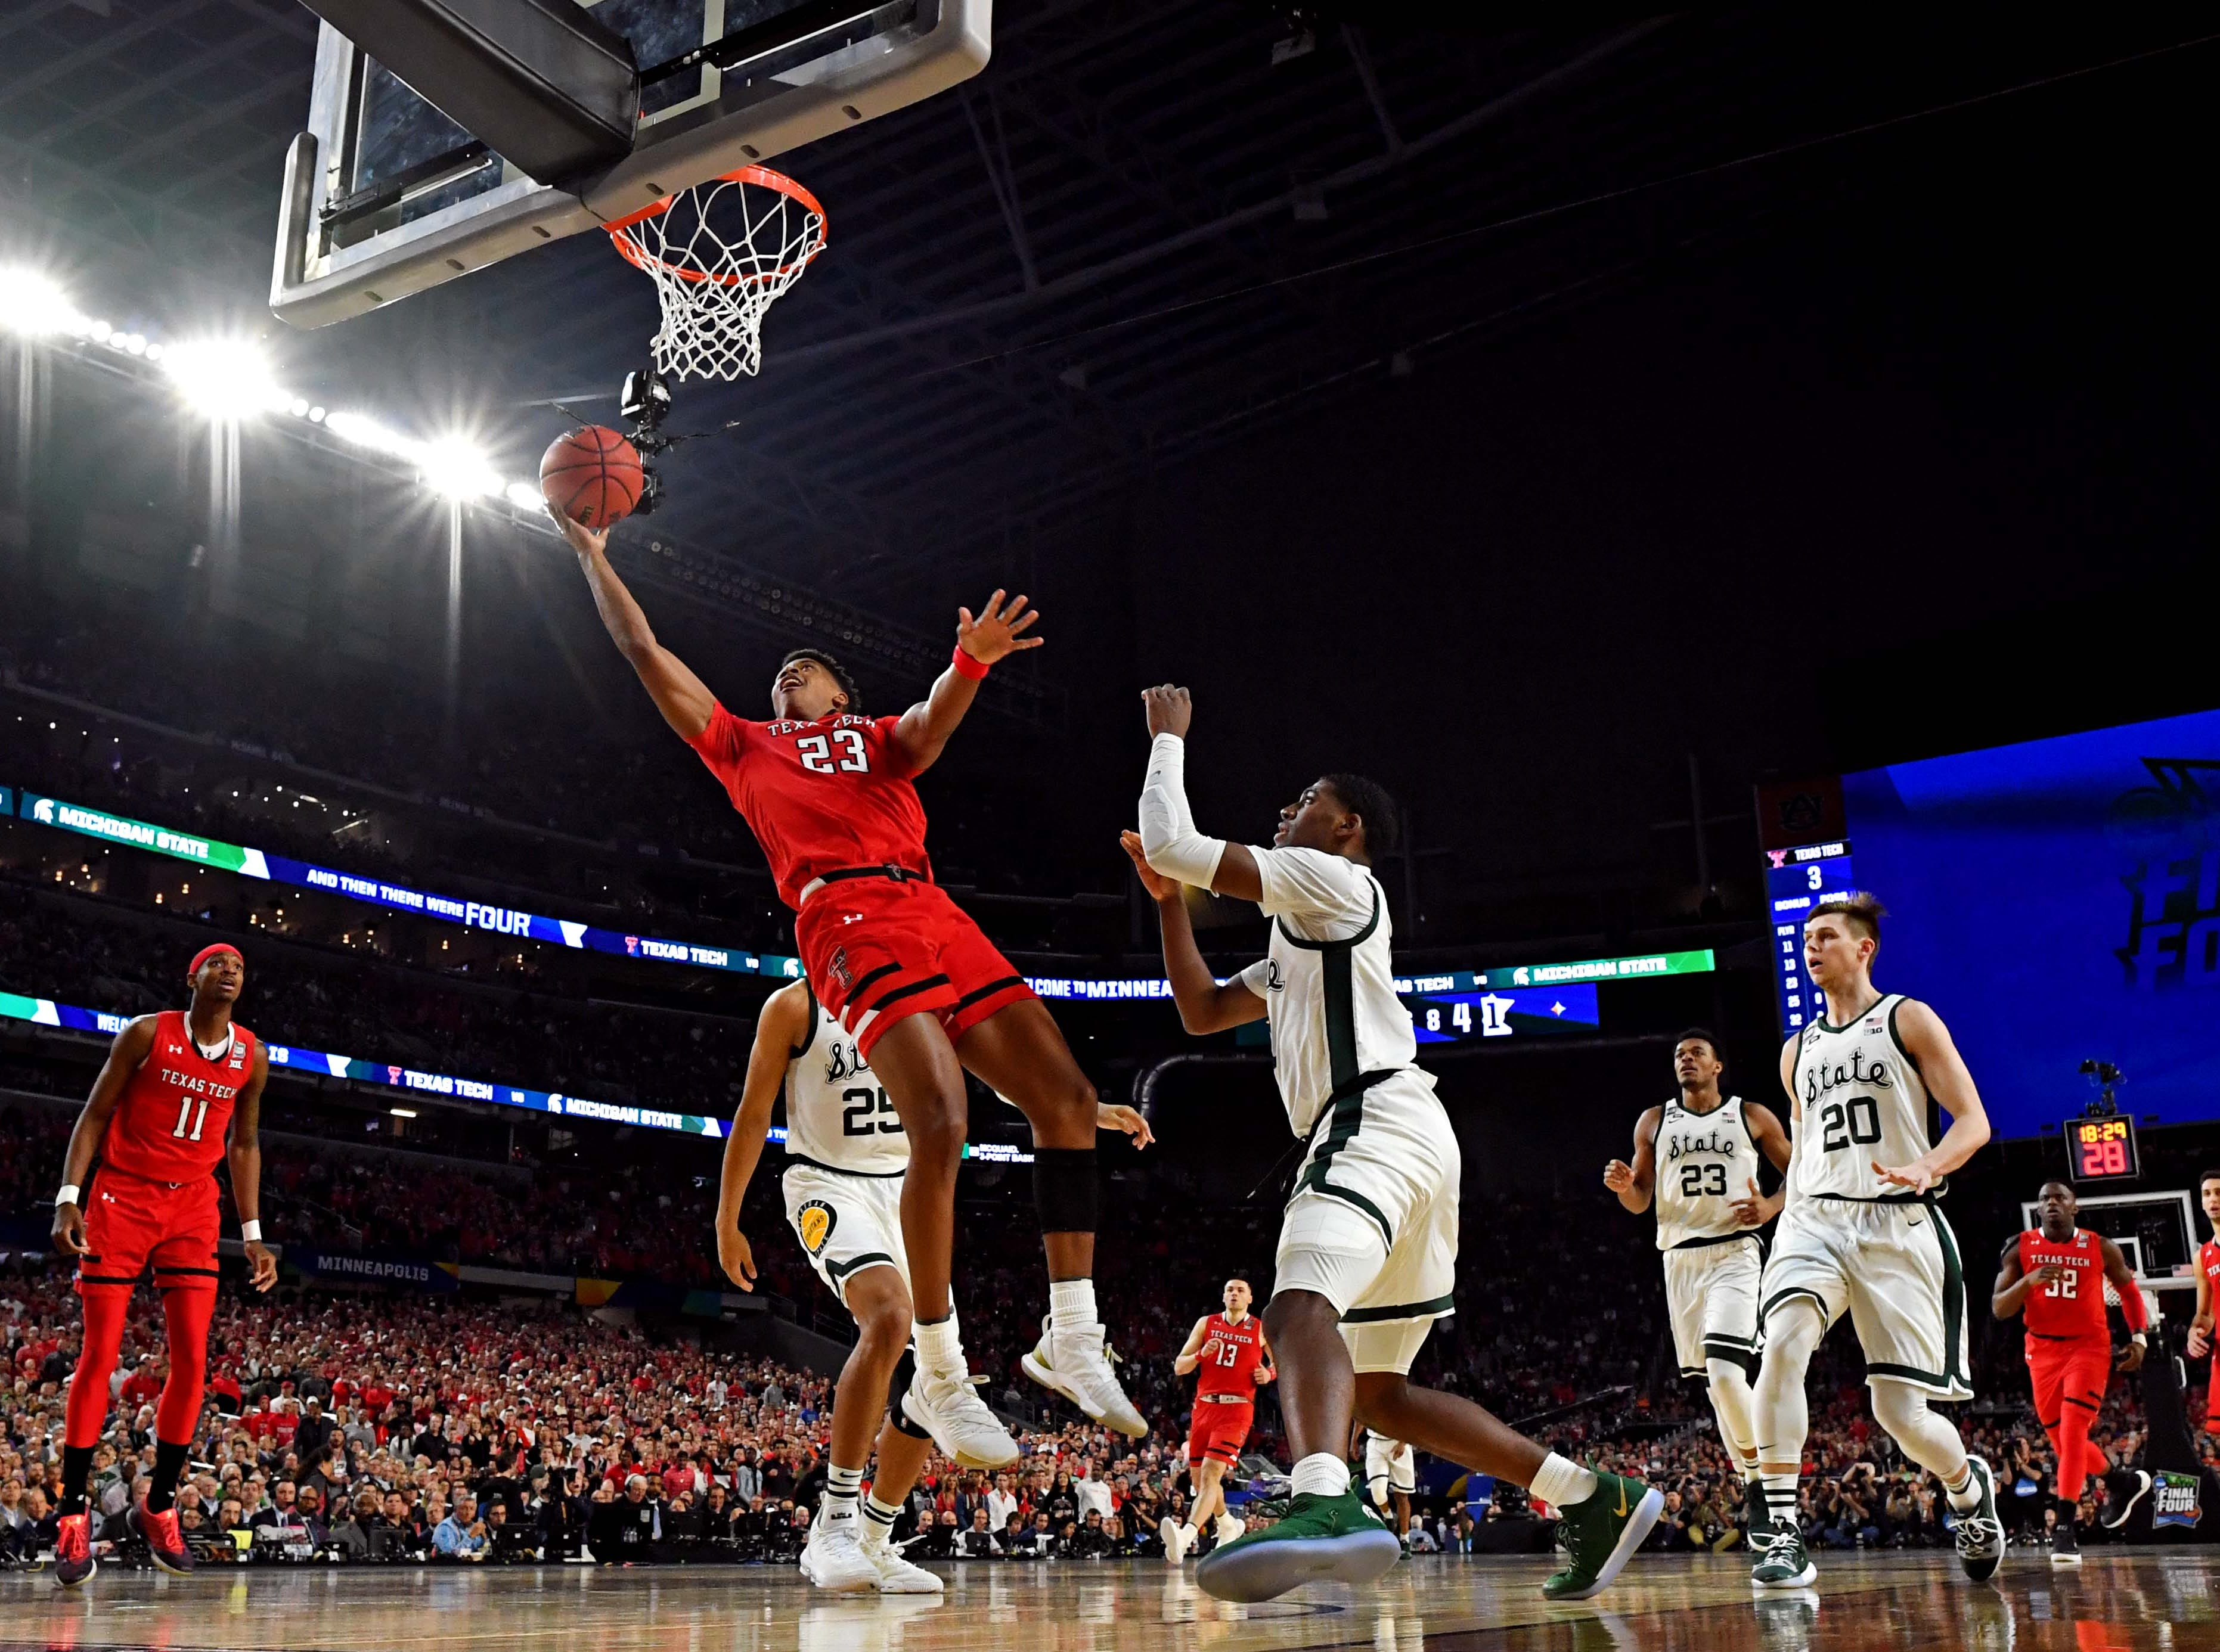 Apr 6, 2019; Minneapolis, MN, USA; Texas Tech Red Raiders guard Jarrett Culver (23) shoots the ball against Michigan State Spartans forward Aaron Henry (11) during the first half in the semifinals of the 2019 men's Final Four at US Bank Stadium. Mandatory Credit: Bob Donnan-USA TODAY Sports